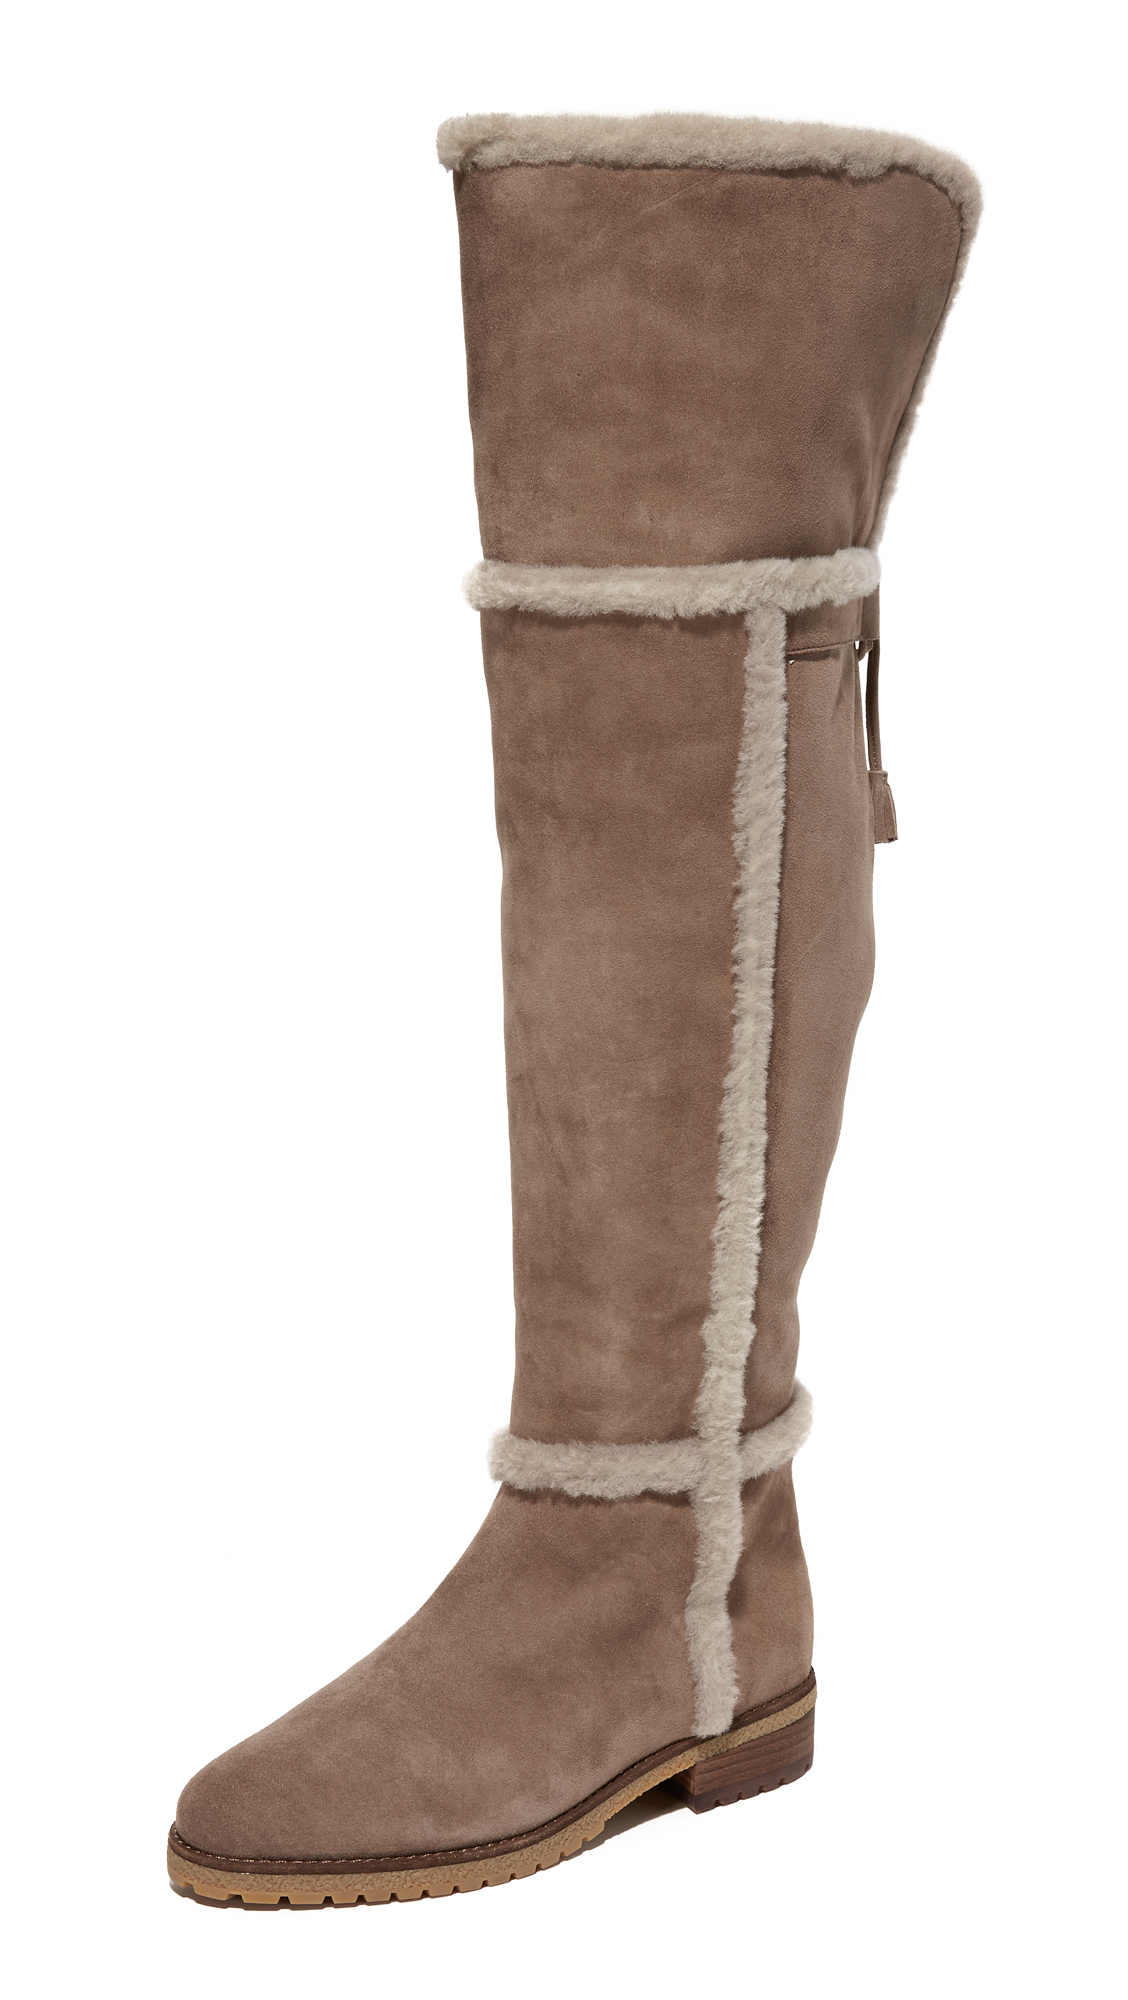 Frye Tamara Shearling Over The Knee Boots - Taupe at Shopbop